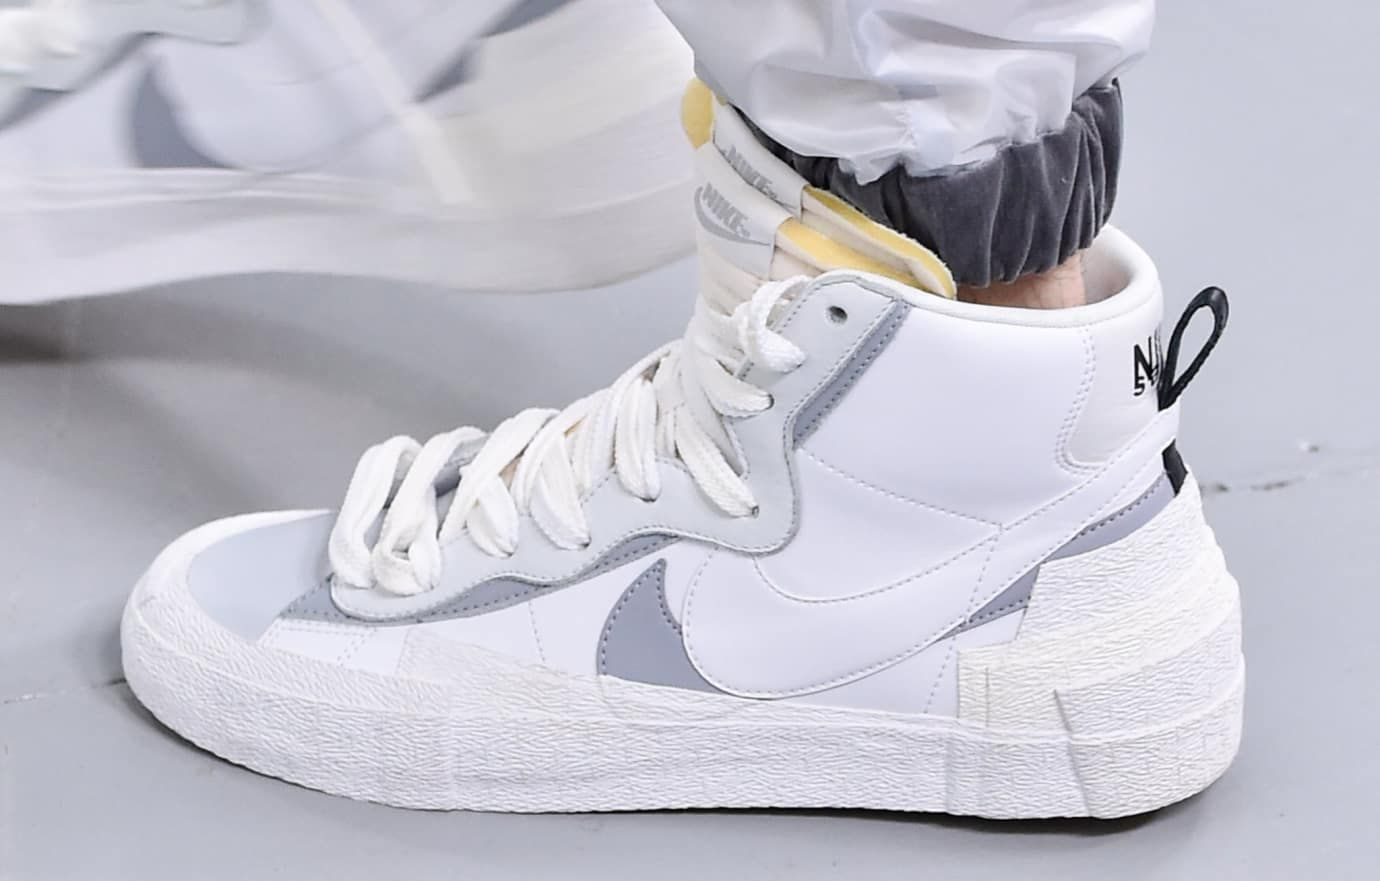 ae687db0292 sacai-nike-hybrid-dunk-blazer-white-lateral | Shoes in 2019 | Adidas ...